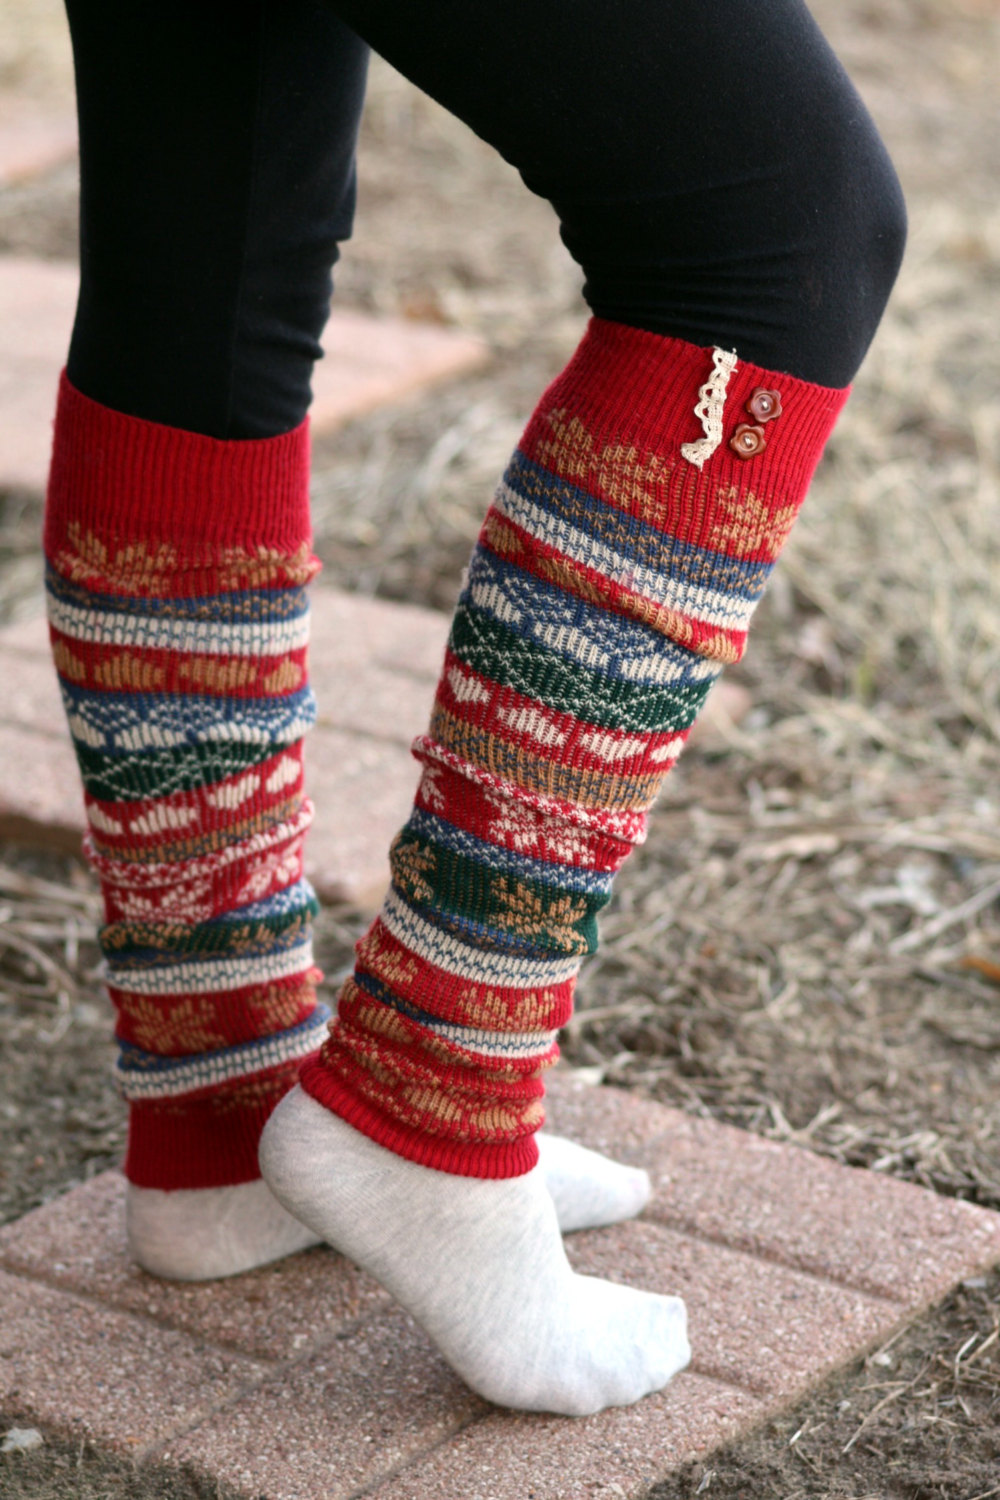 Limited Time Sale Women's Legwarmers - Boho,Christmas, snowflake, Boot Cover, Socks,Gift, Red Button